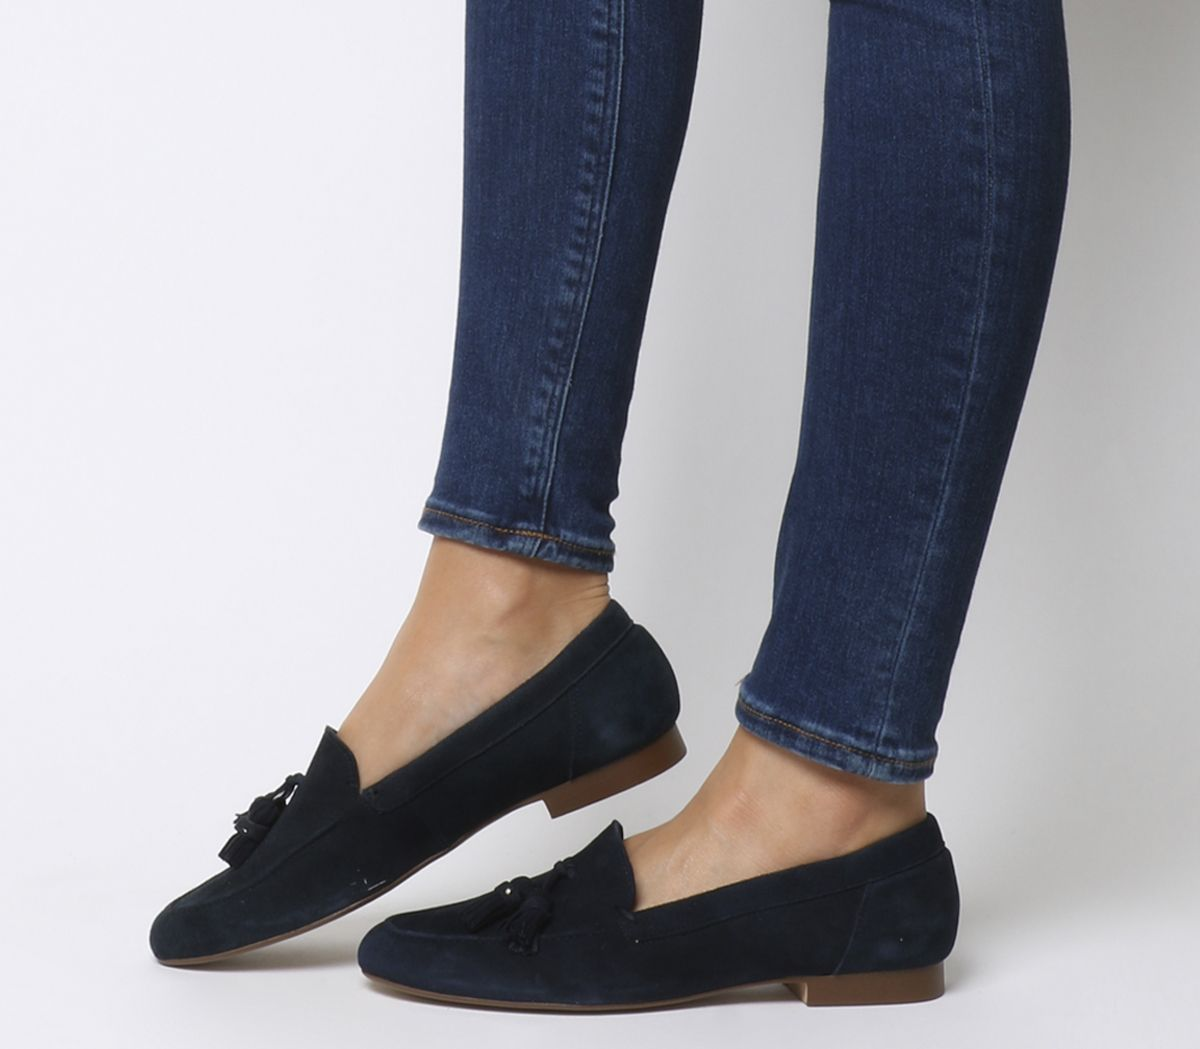 83a6a00f1f4 Office Retro Tassel Loafers Navy Suede - Flats